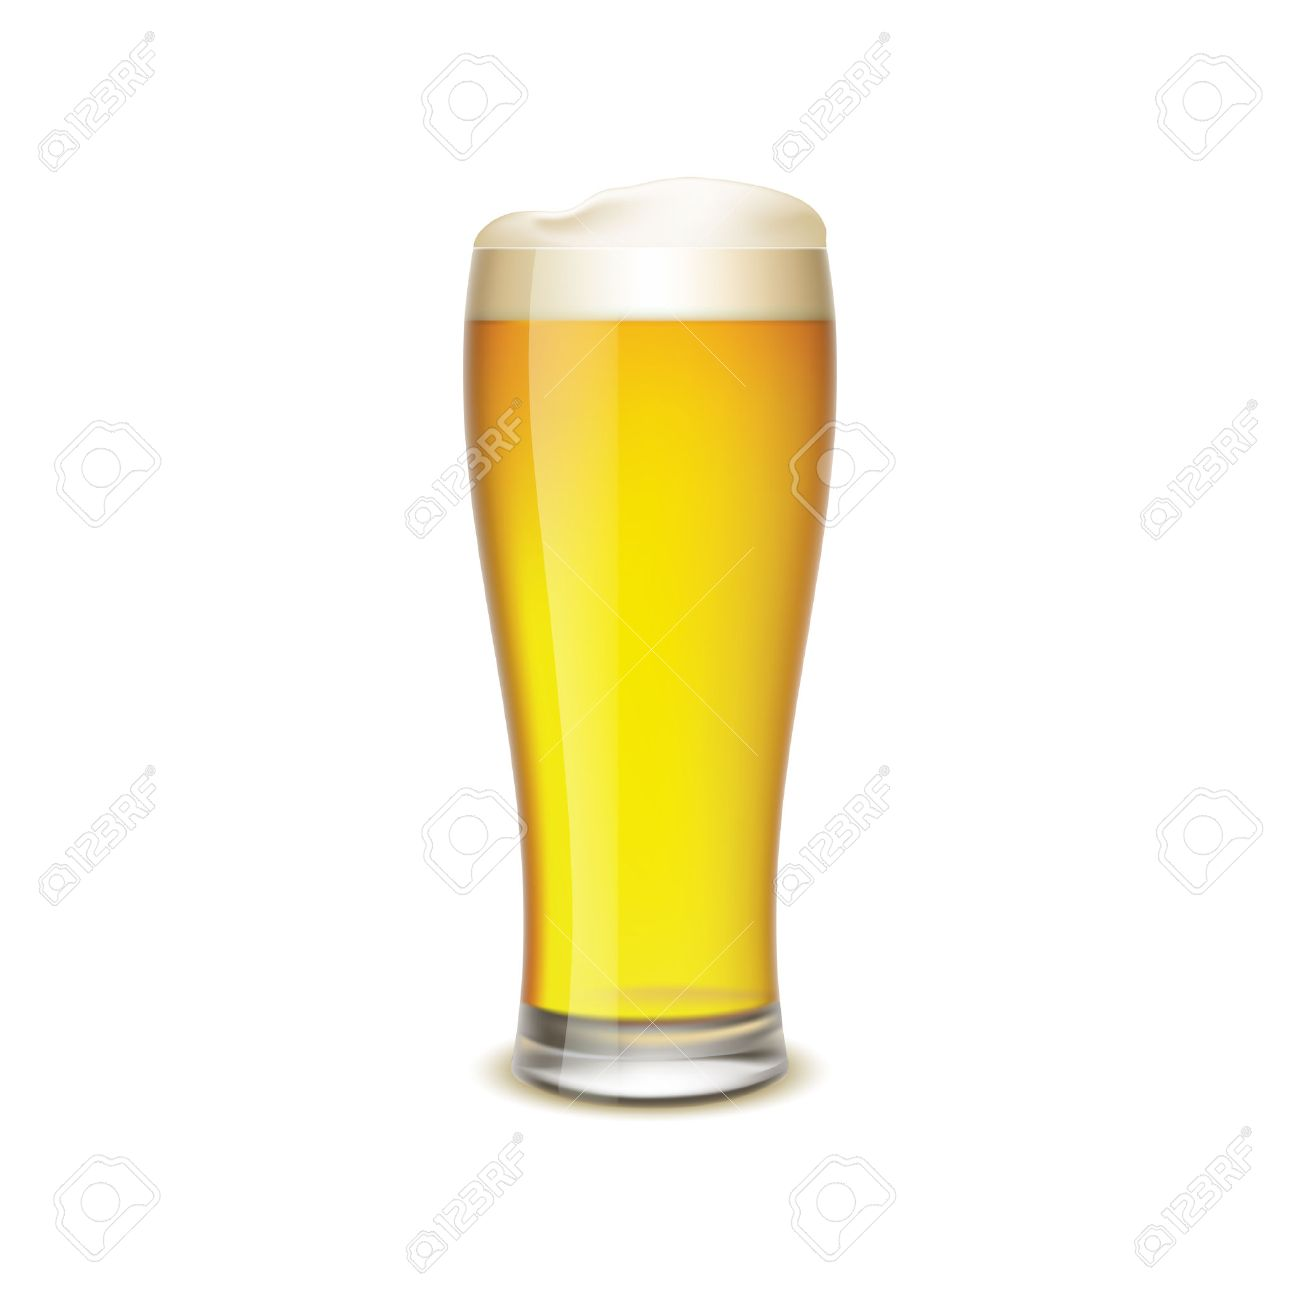 Bier Glas Glass Of Beer Isolated On White Background